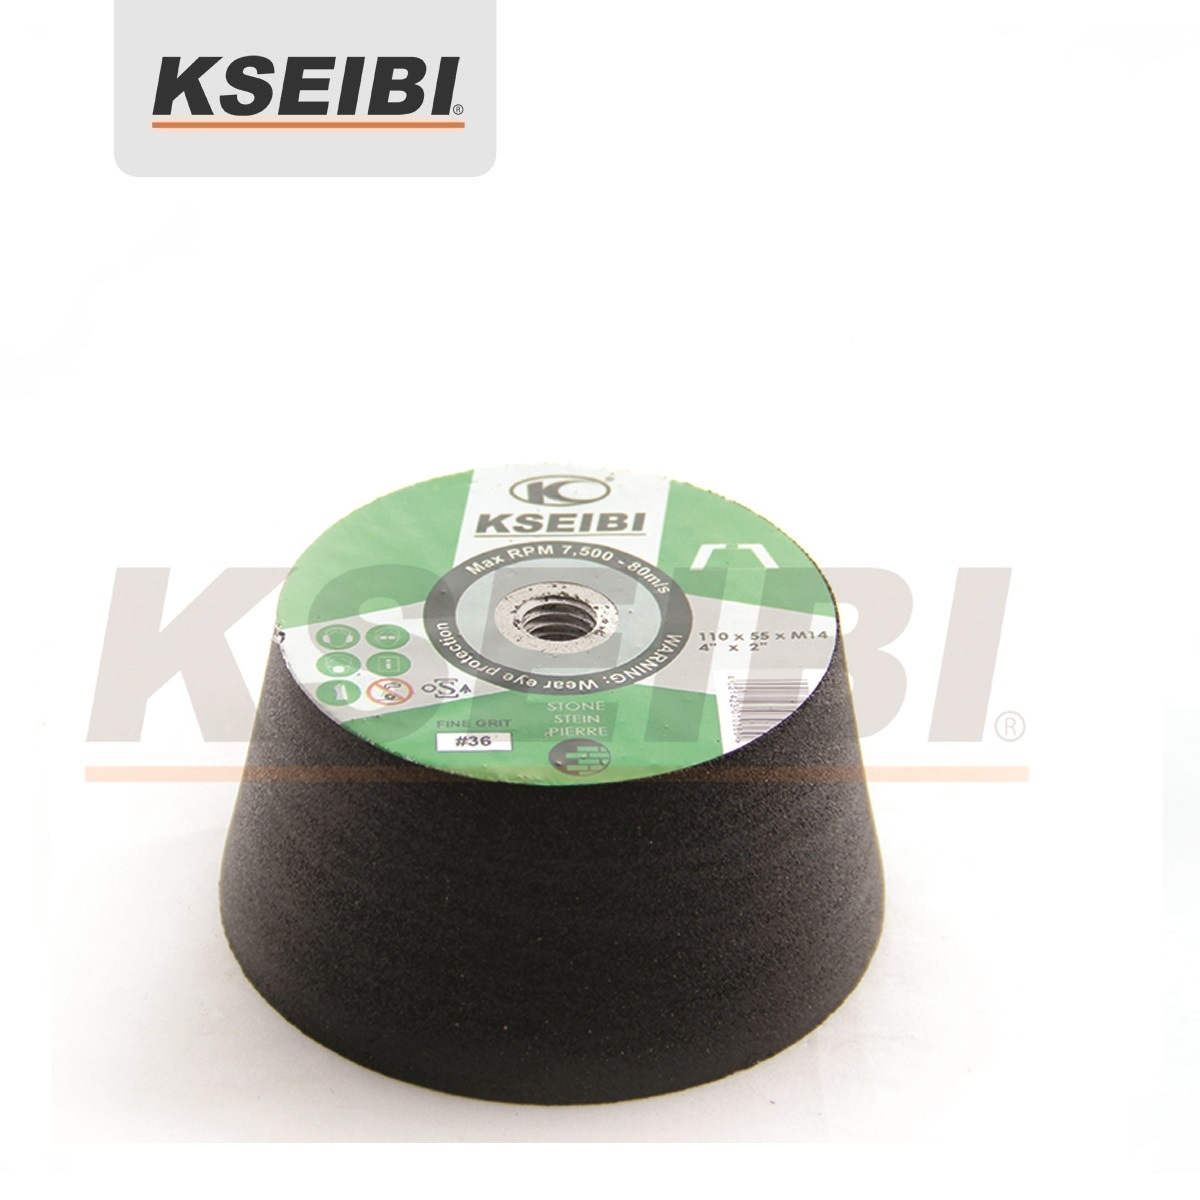 Best Result Kseibi Silicone Carbide/Aluminium Oxide Grinding Cup Wheel